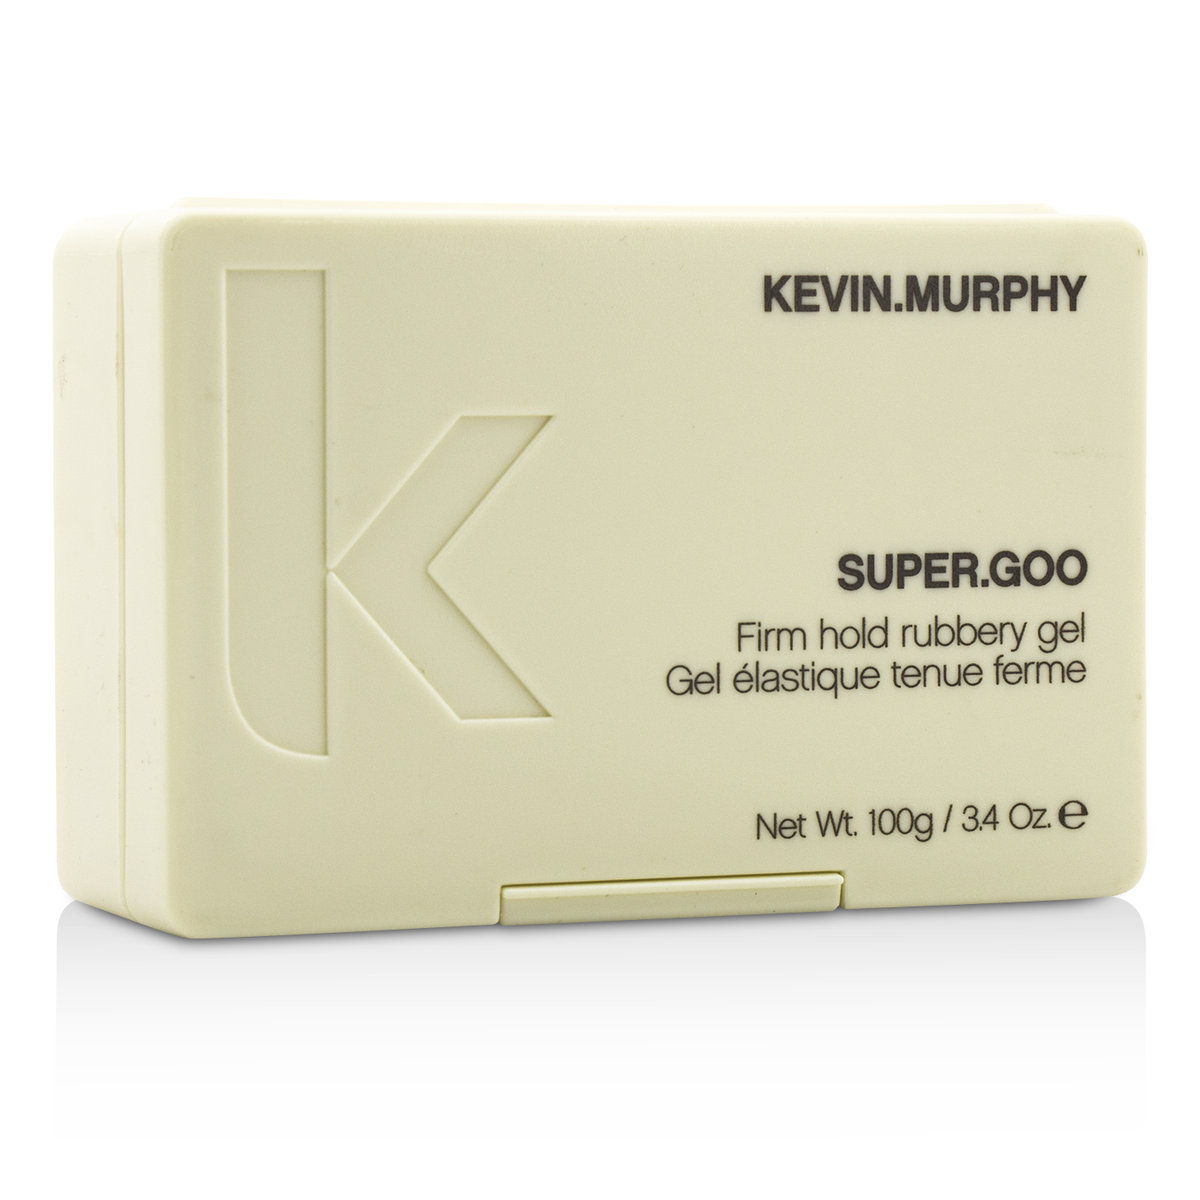 Super.Goo Firm Hold Rubbery Gel  -[Parallel Import Product]